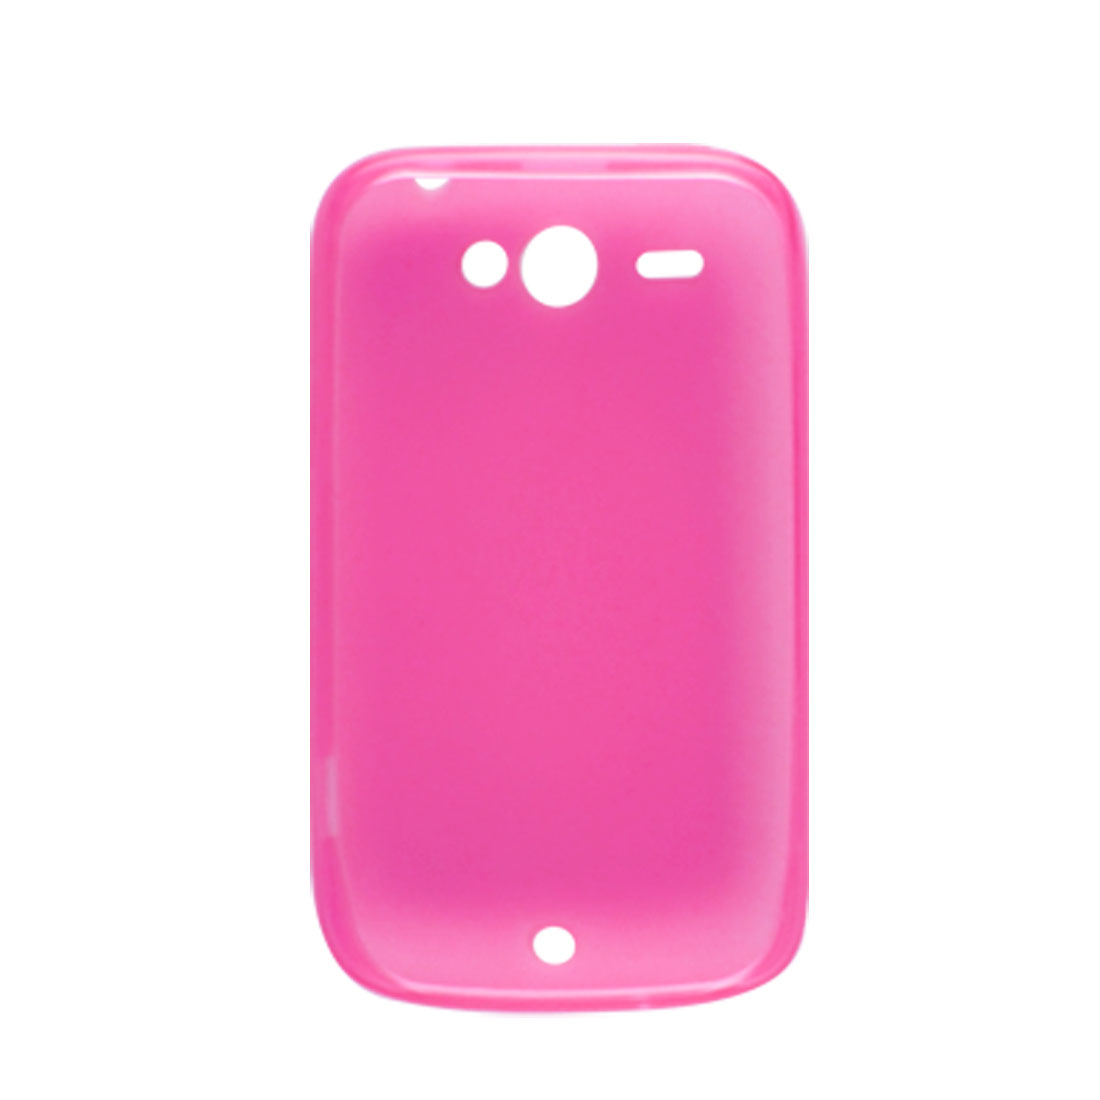 Fuchsia Soft Plastic Protector Case for HTC Wildfire G8